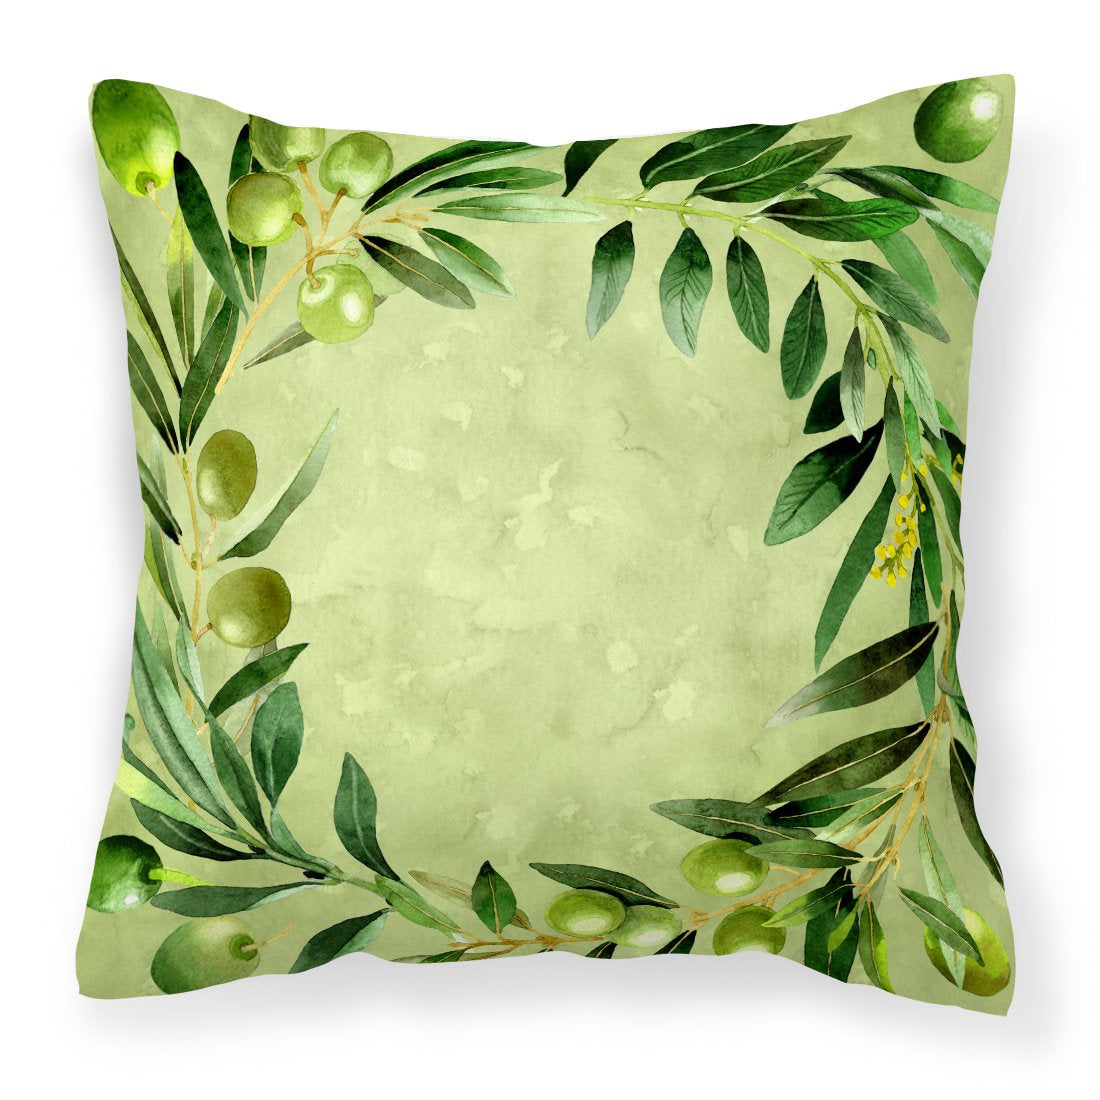 Buy this Olives Fabric Decorative Pillow CK1702PW1818